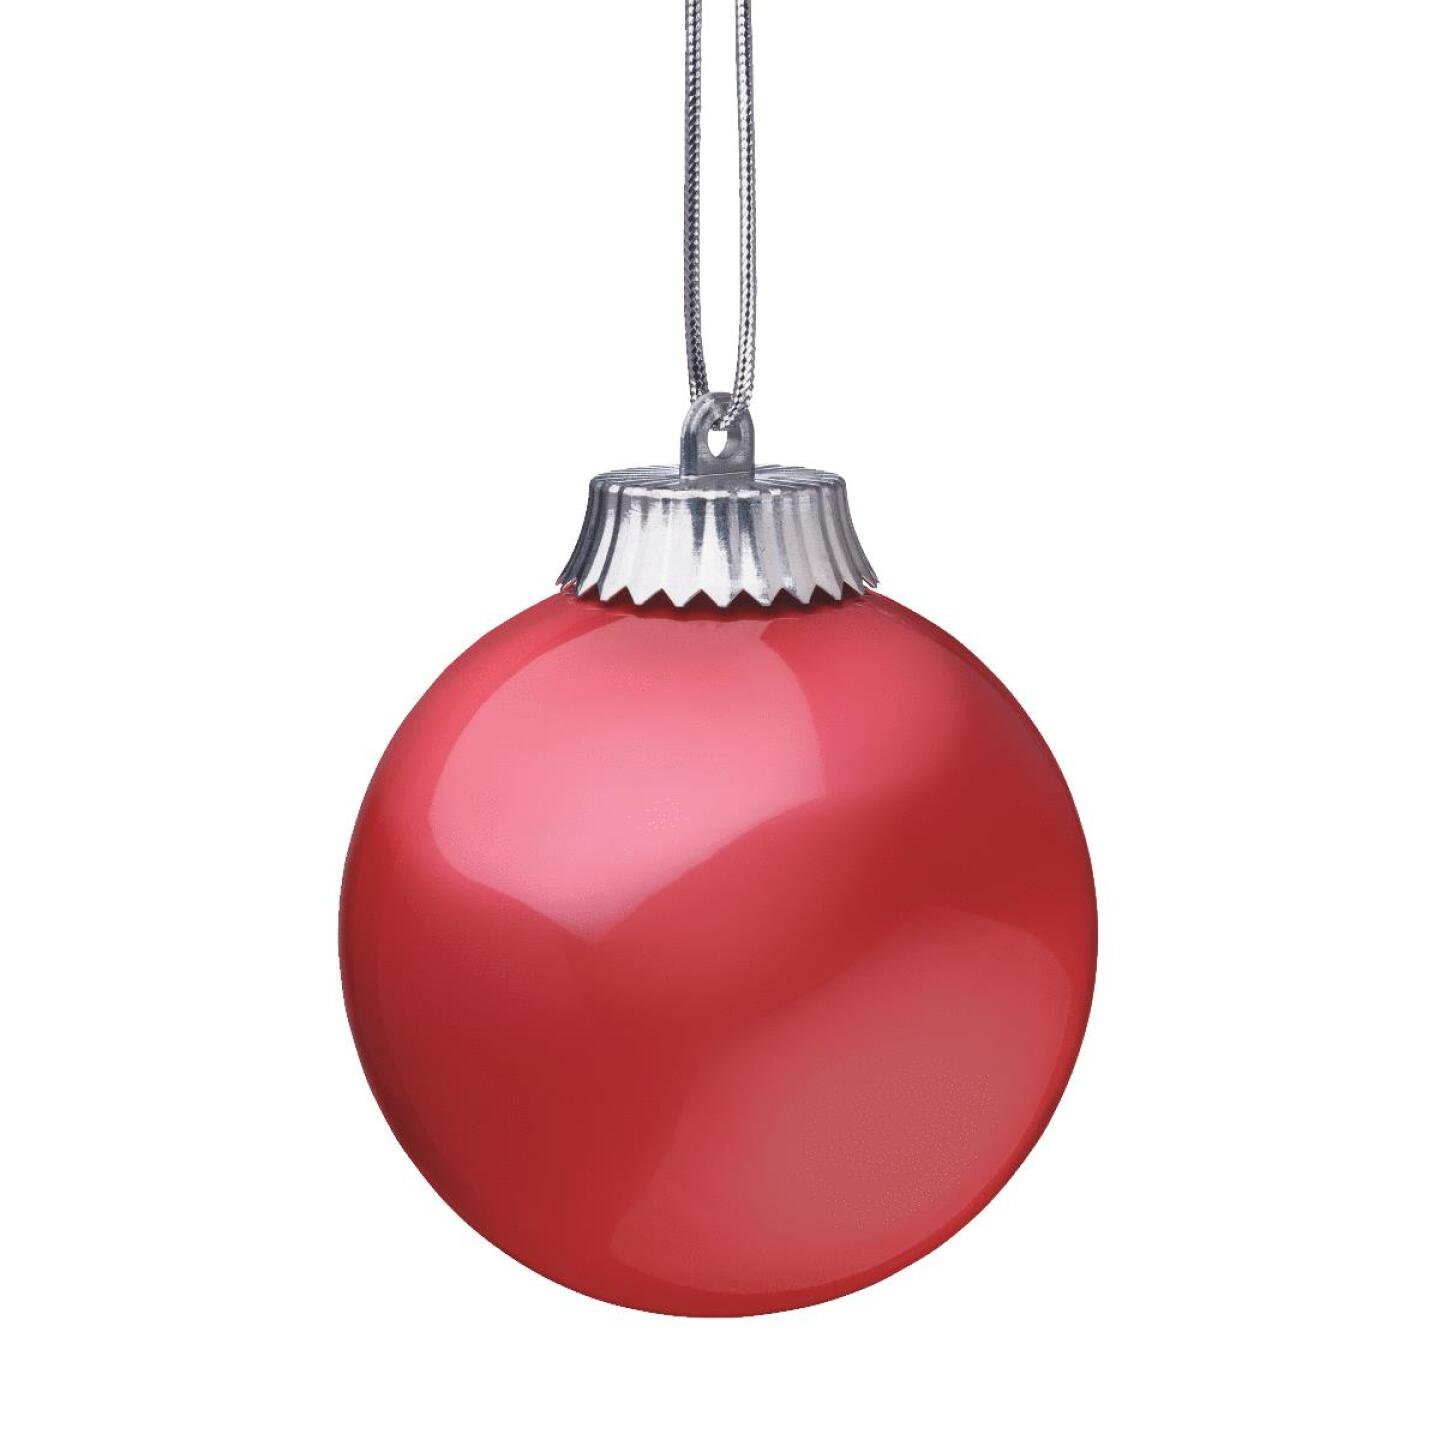 Xodus 5 In. Shatter Resistant LED Outdoor Christmas Ornament Image 2